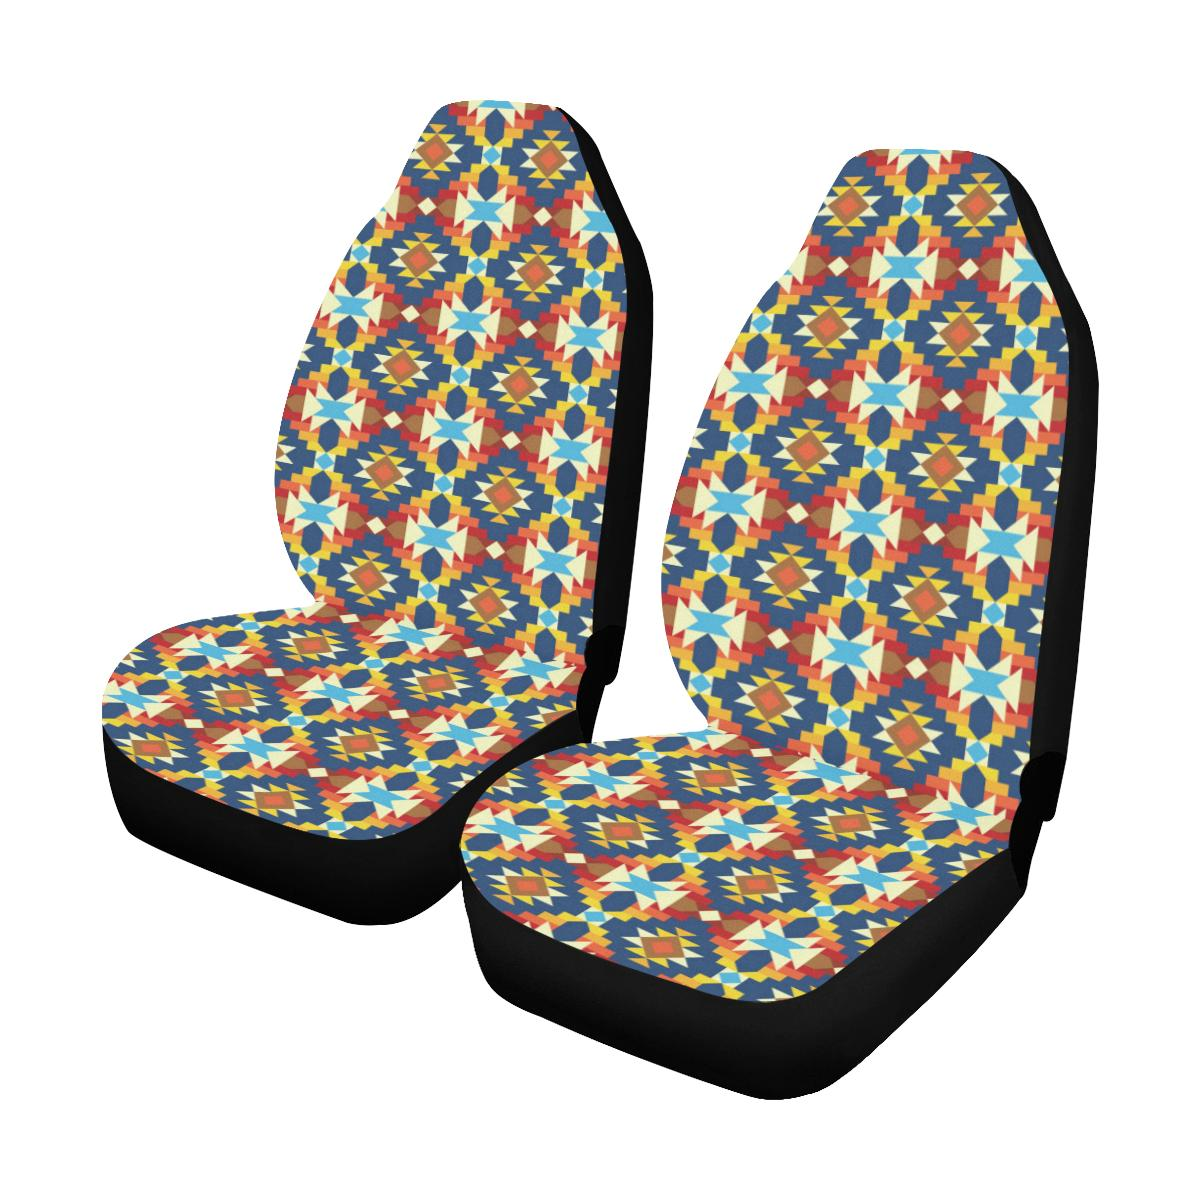 Aztec Pattern Print Design 01 Car Seat Covers (Set of 2)-JORJUNE.COM